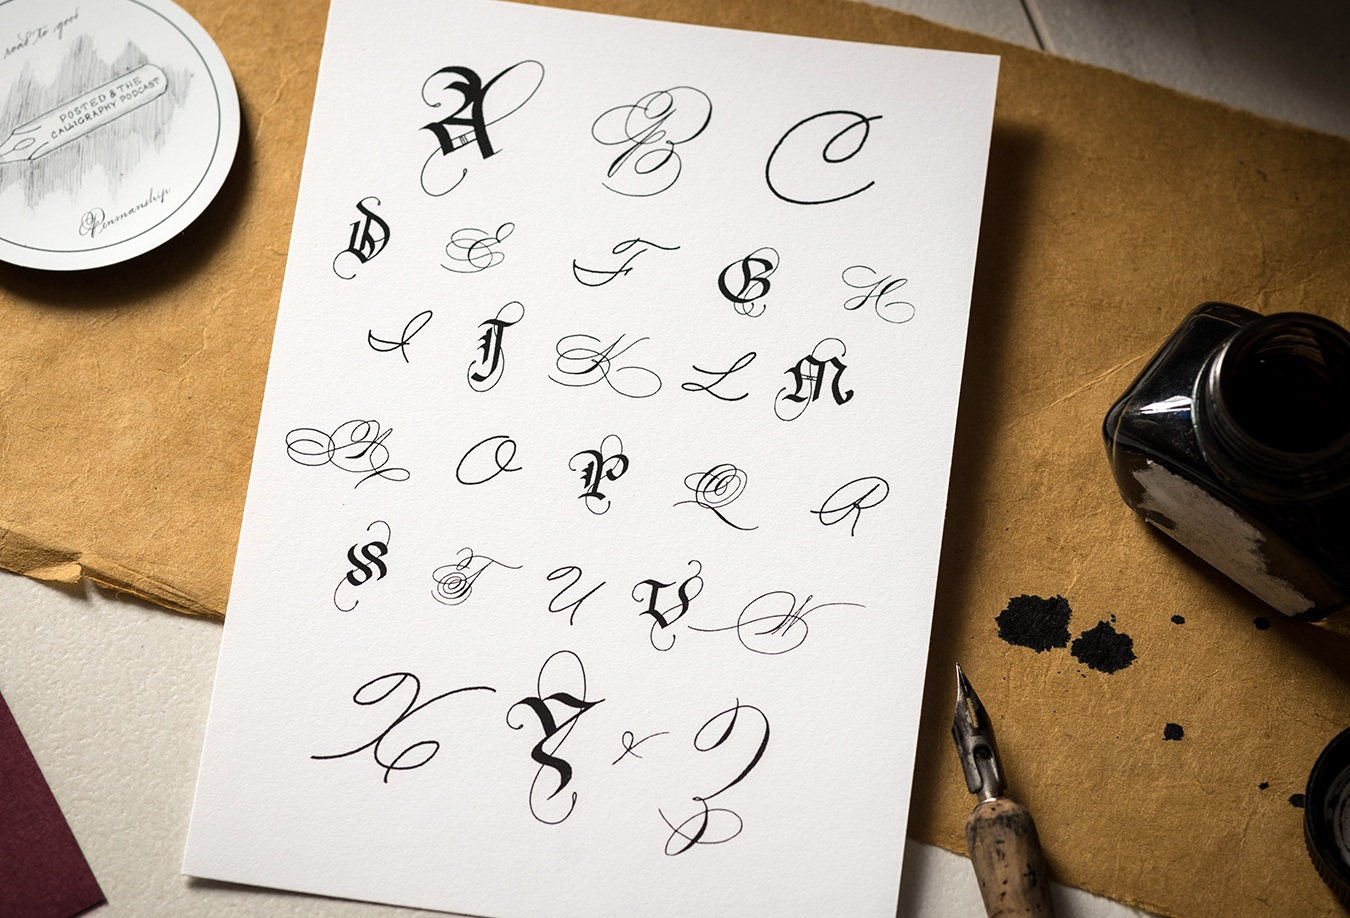 posted-letter-009-calligraphy-1350px-alphabet.jpg